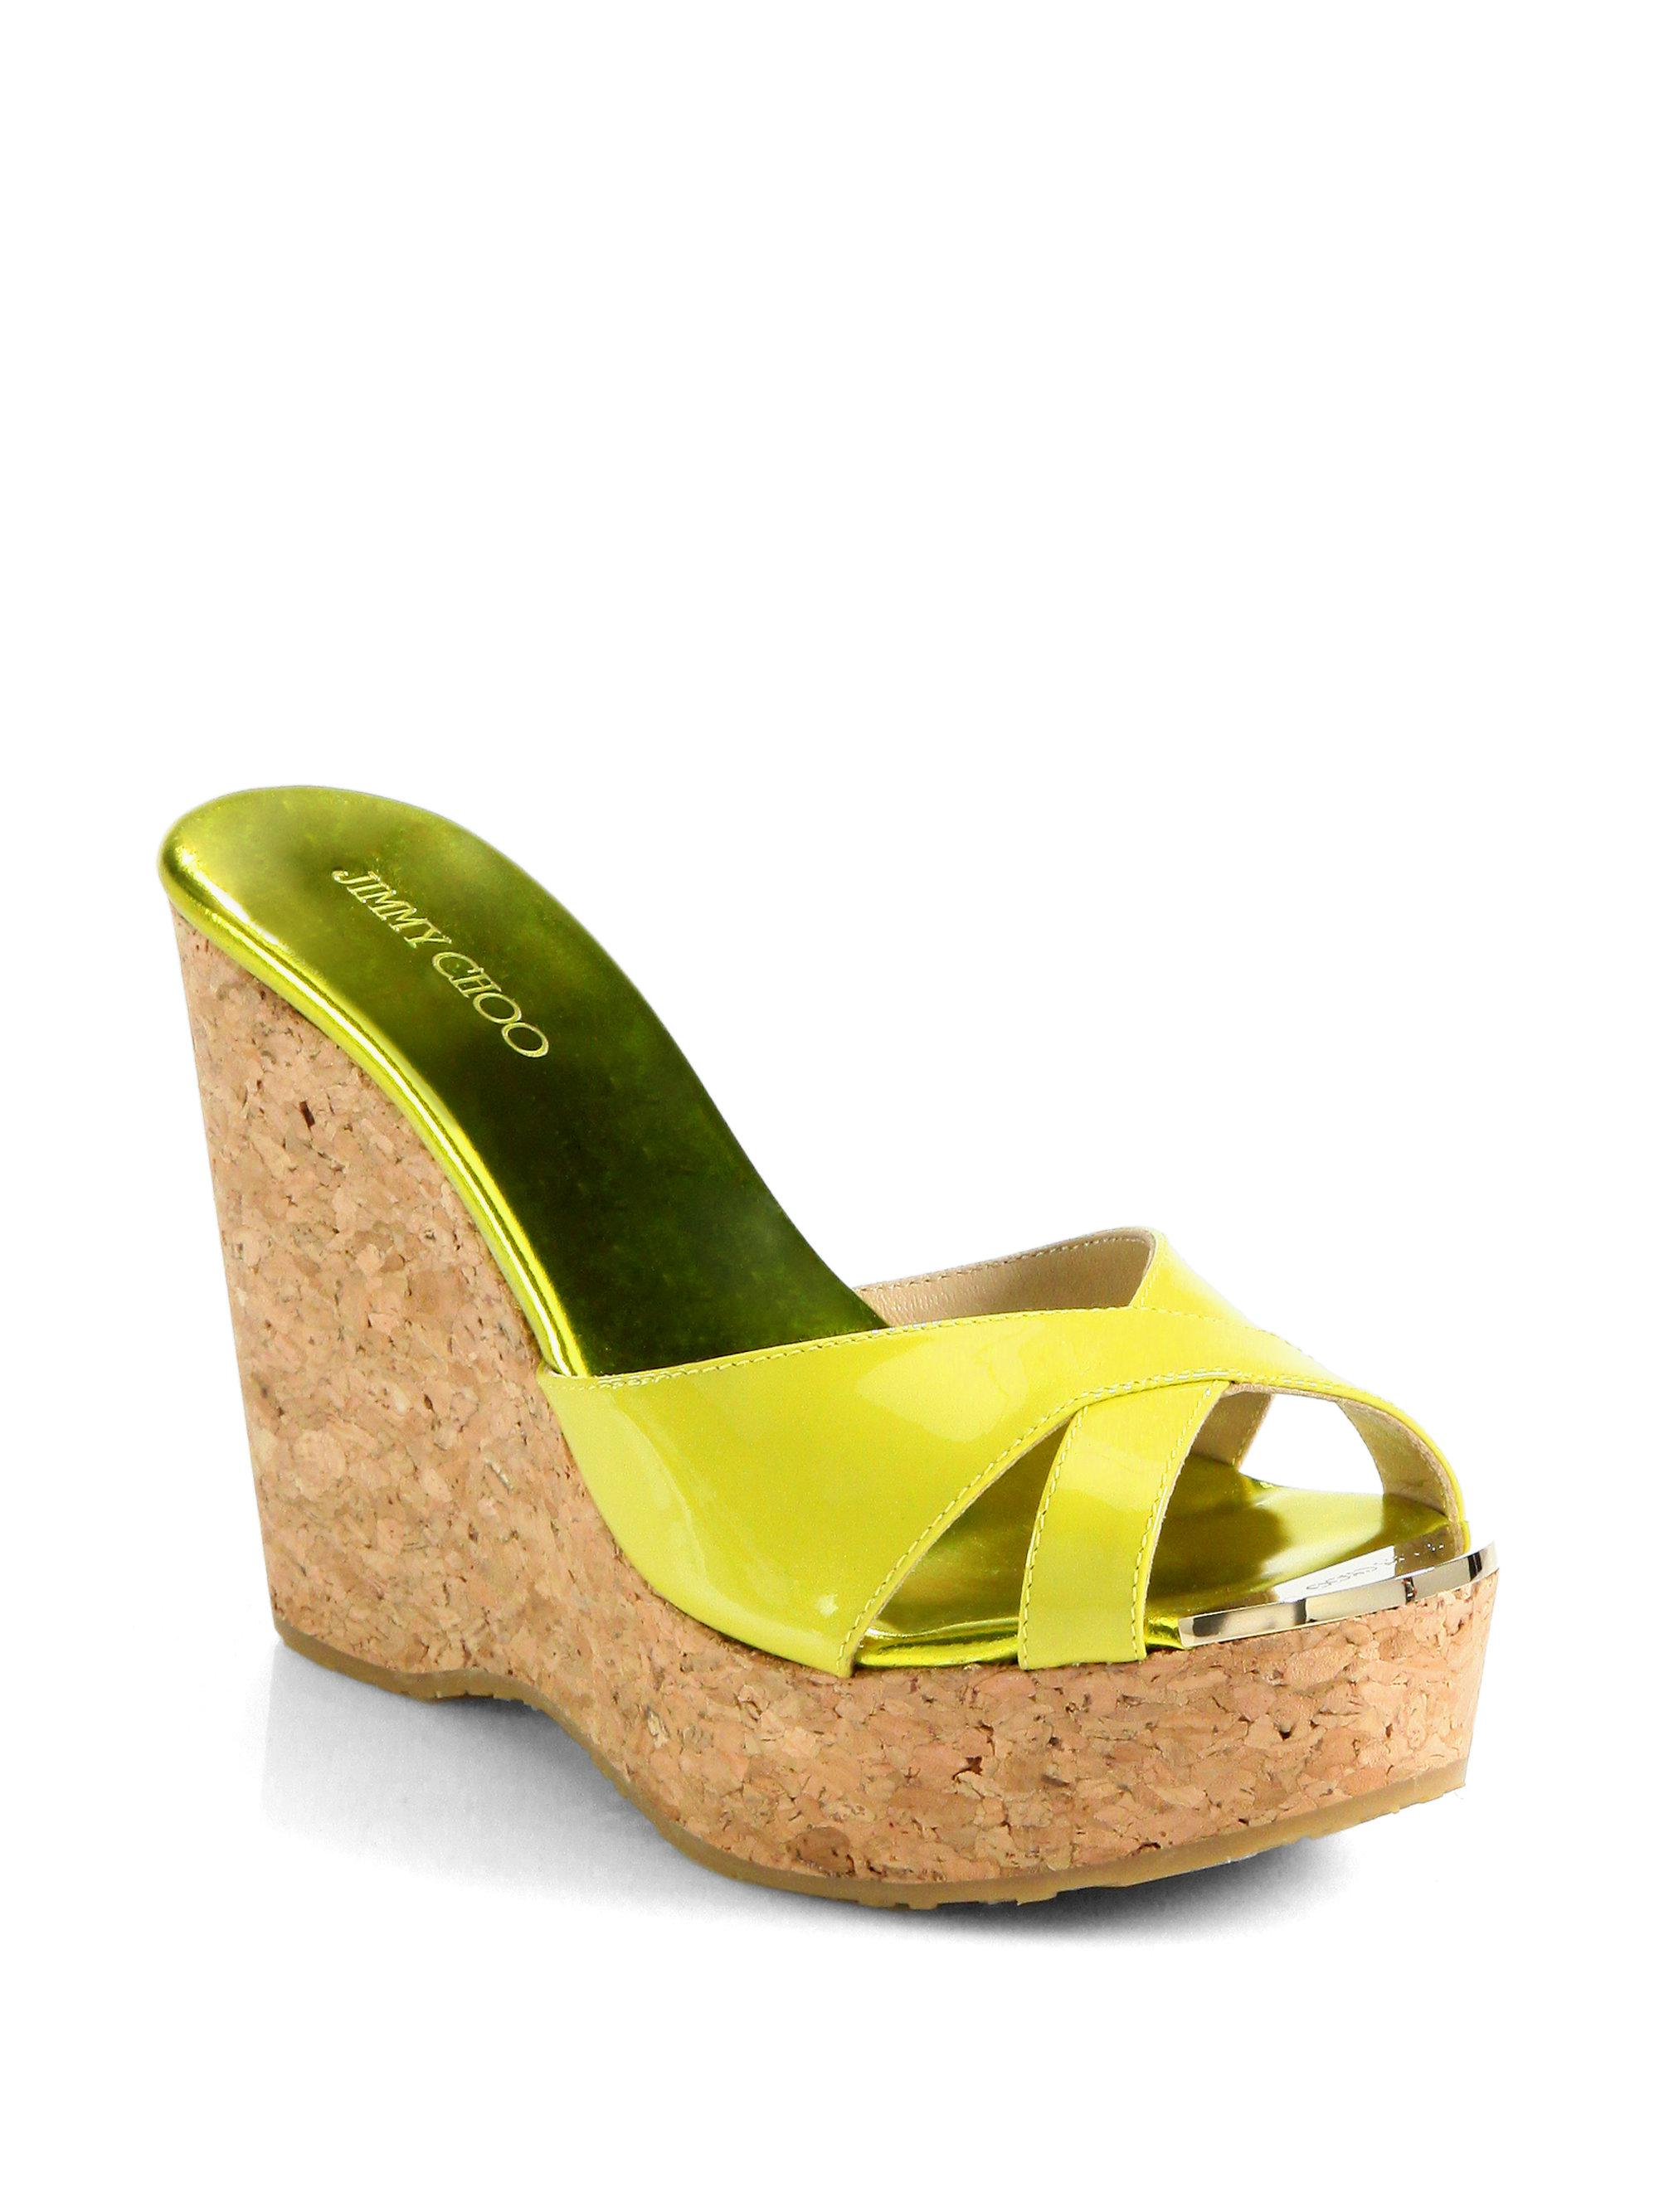 f7593375e213 Lyst - Jimmy Choo Perfume 120 Patent Leather And Cork Wedge Sandals ...